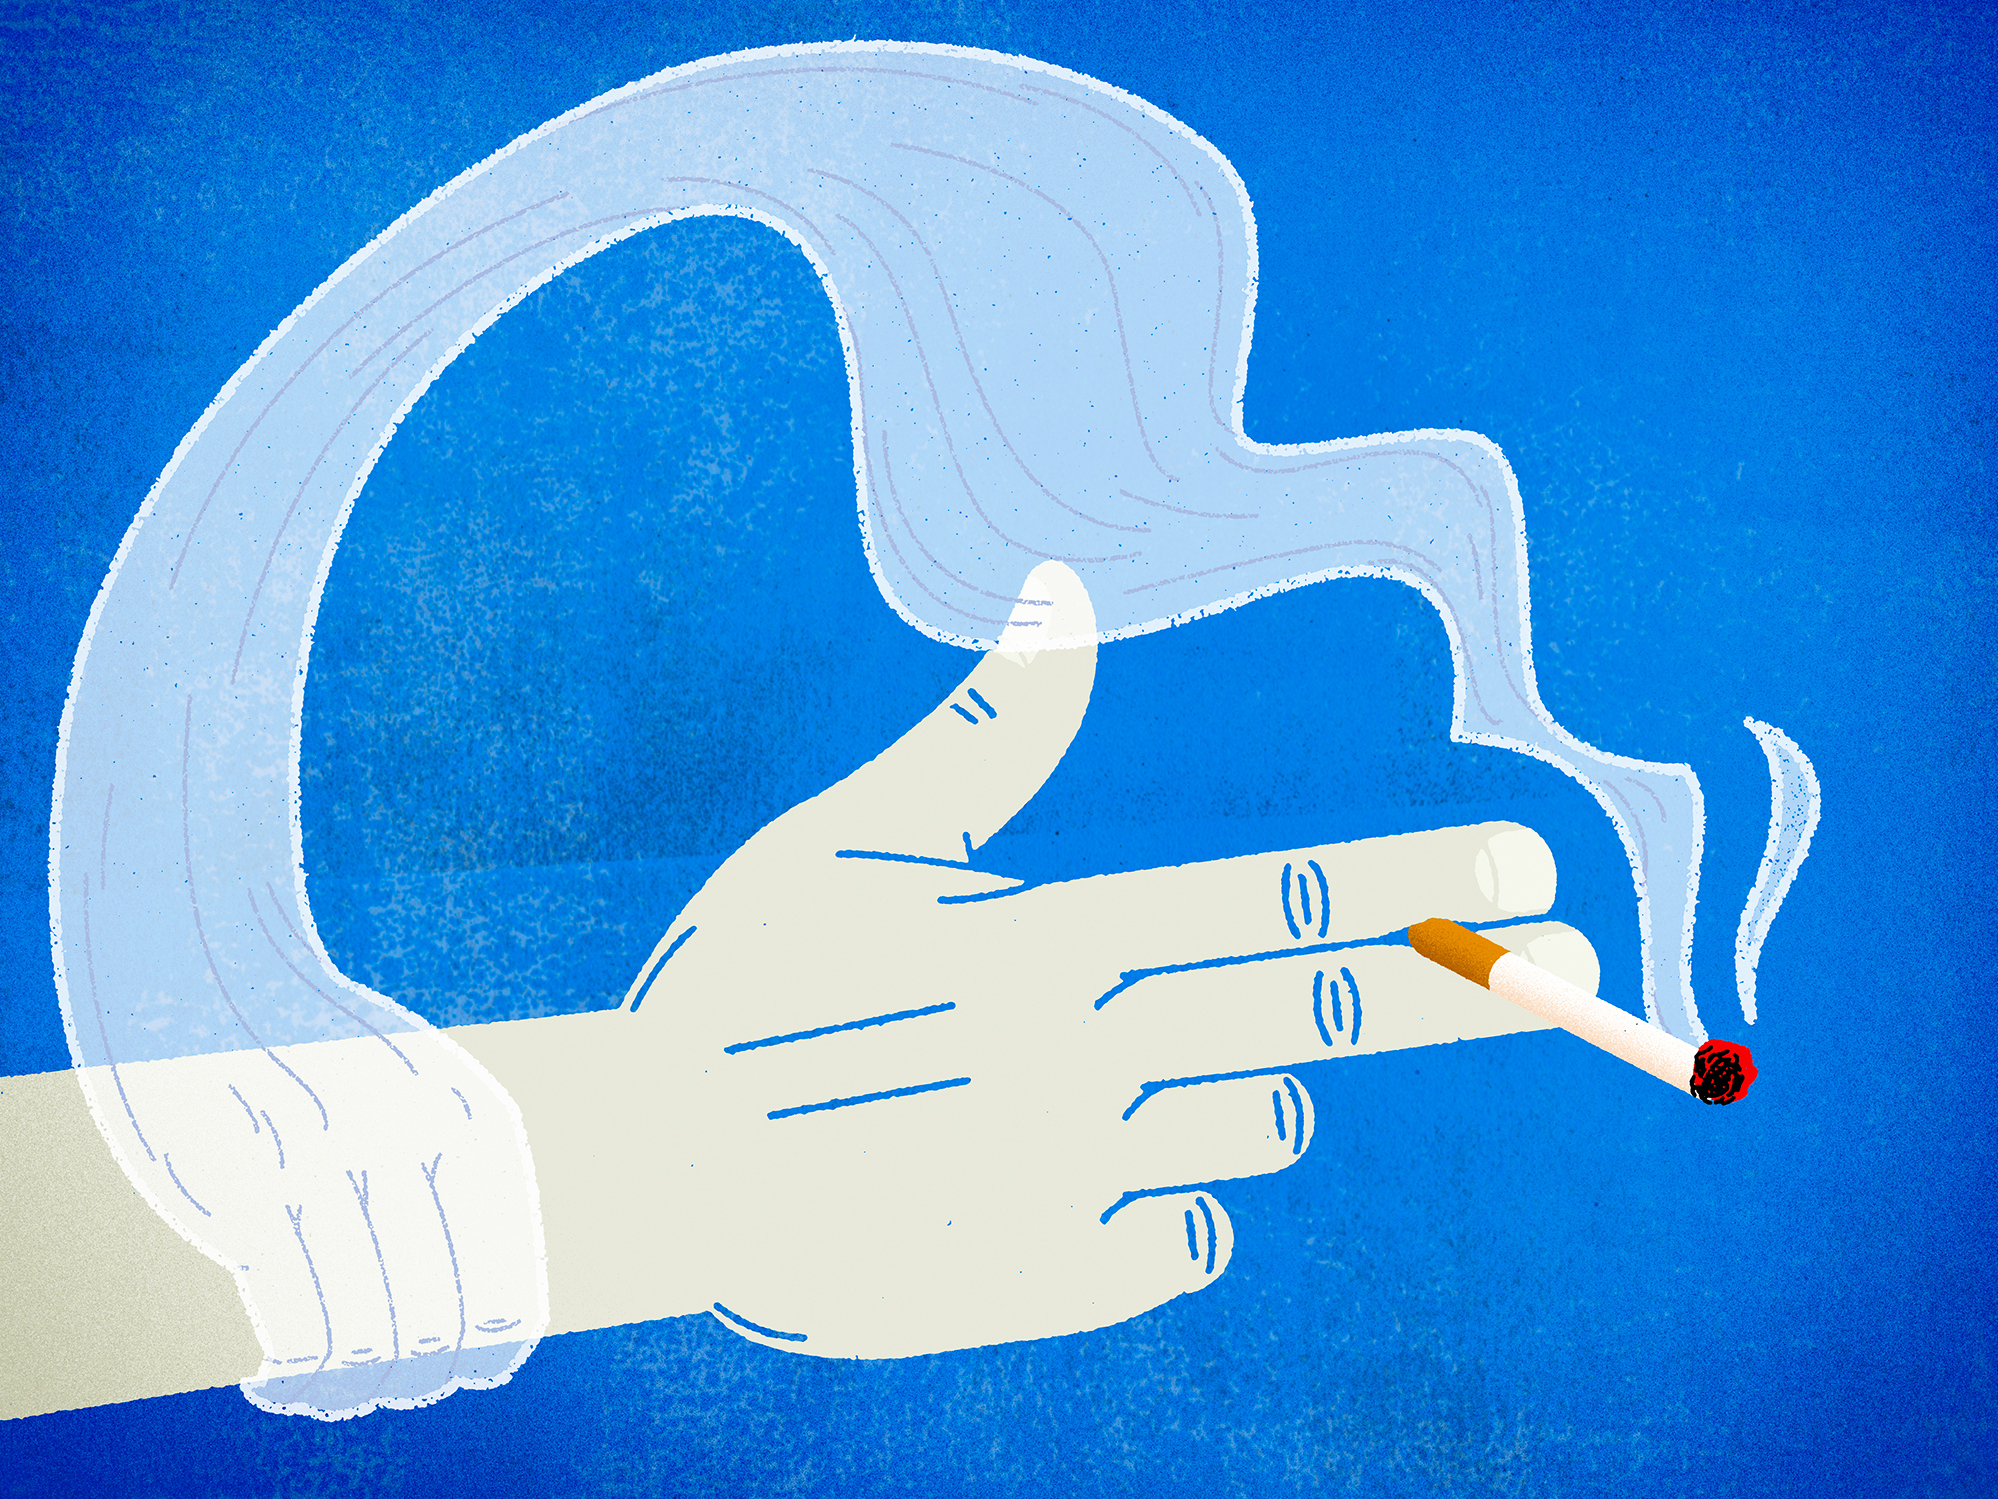 Smokers More Likely To Quit If Their Own Cash Is On The Line